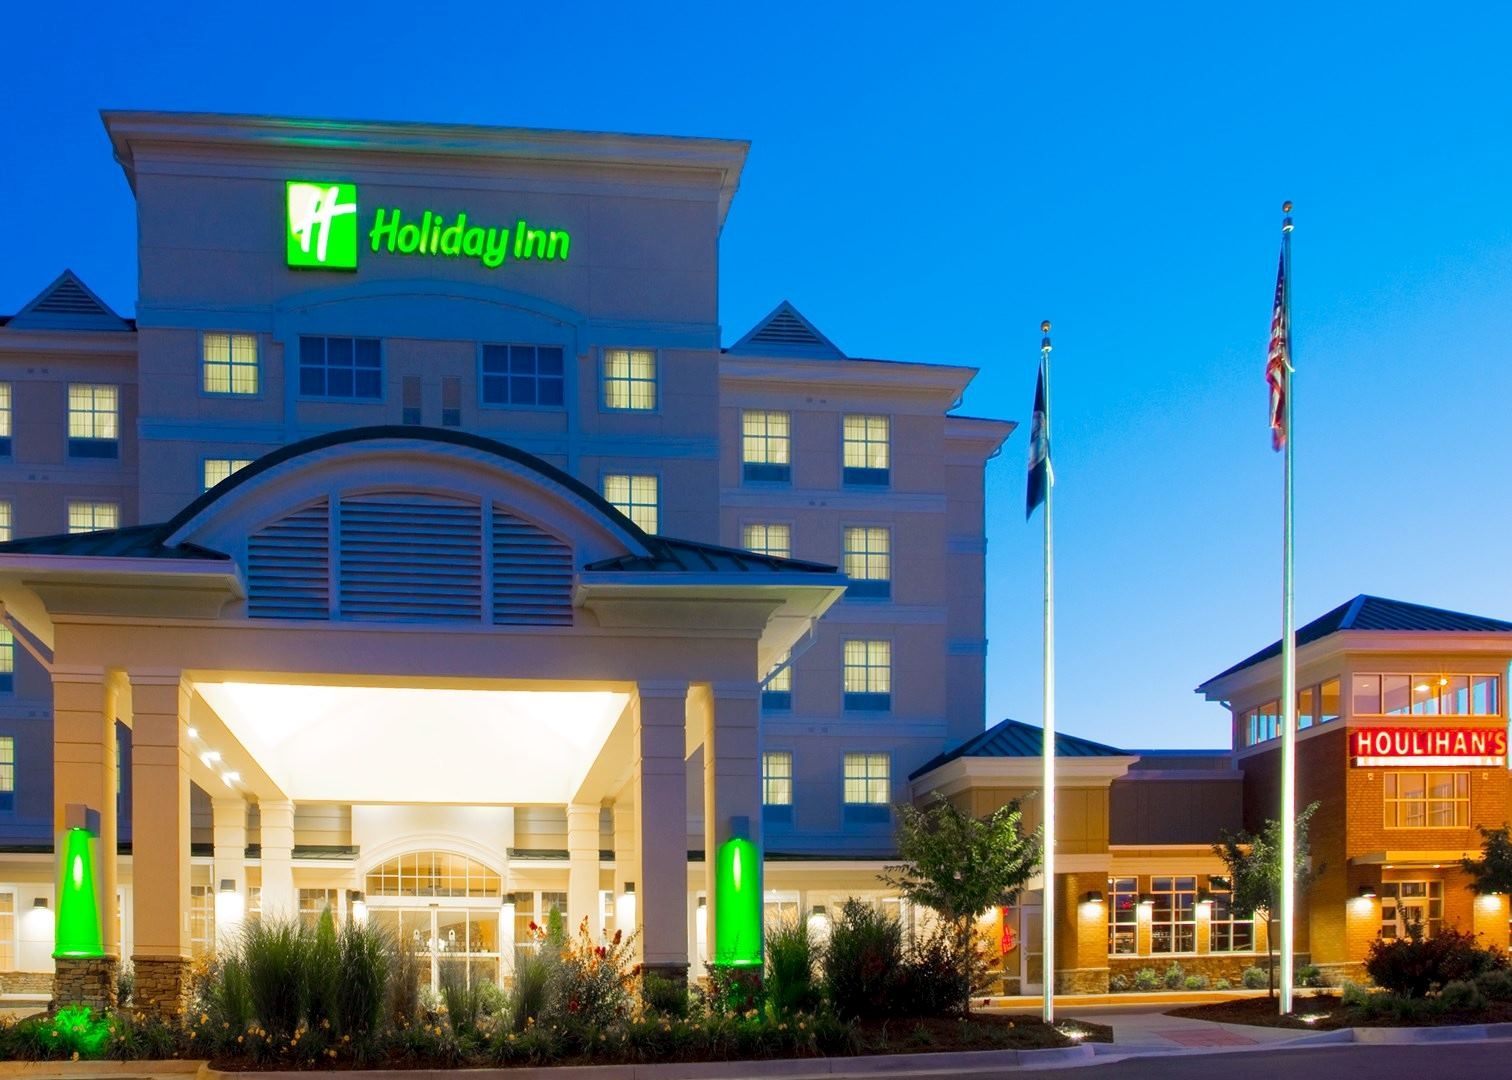 Holiday Inn Amp Suites Front Royals Audley Travel